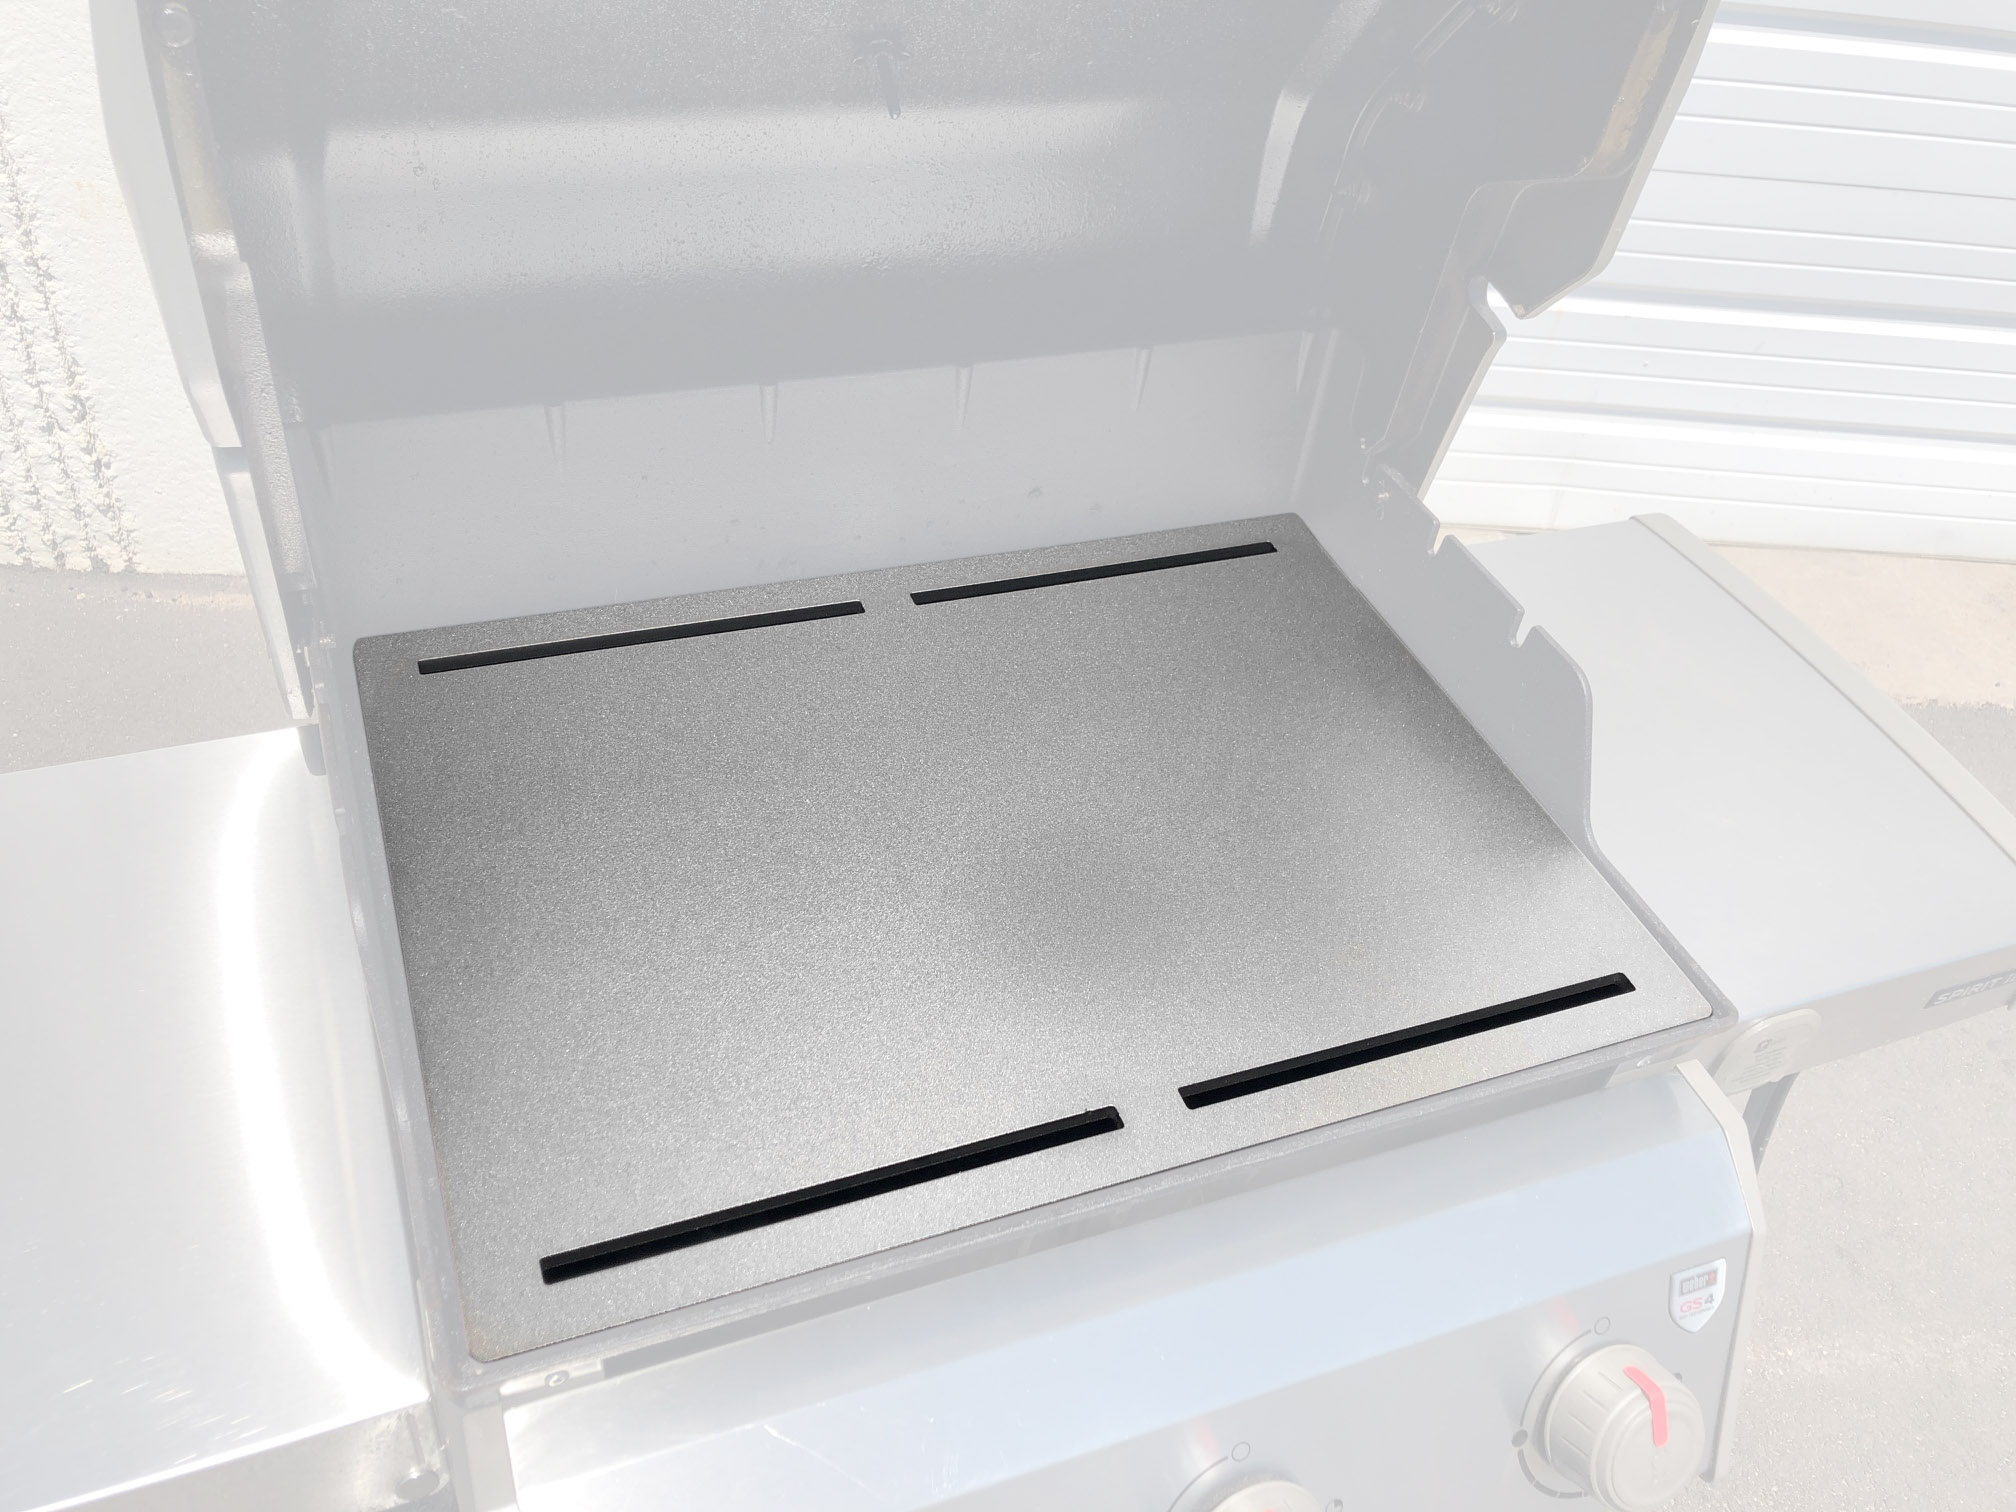 ThermiChef Full Conductive Grill Griddle - Fits Weber Gas Grills